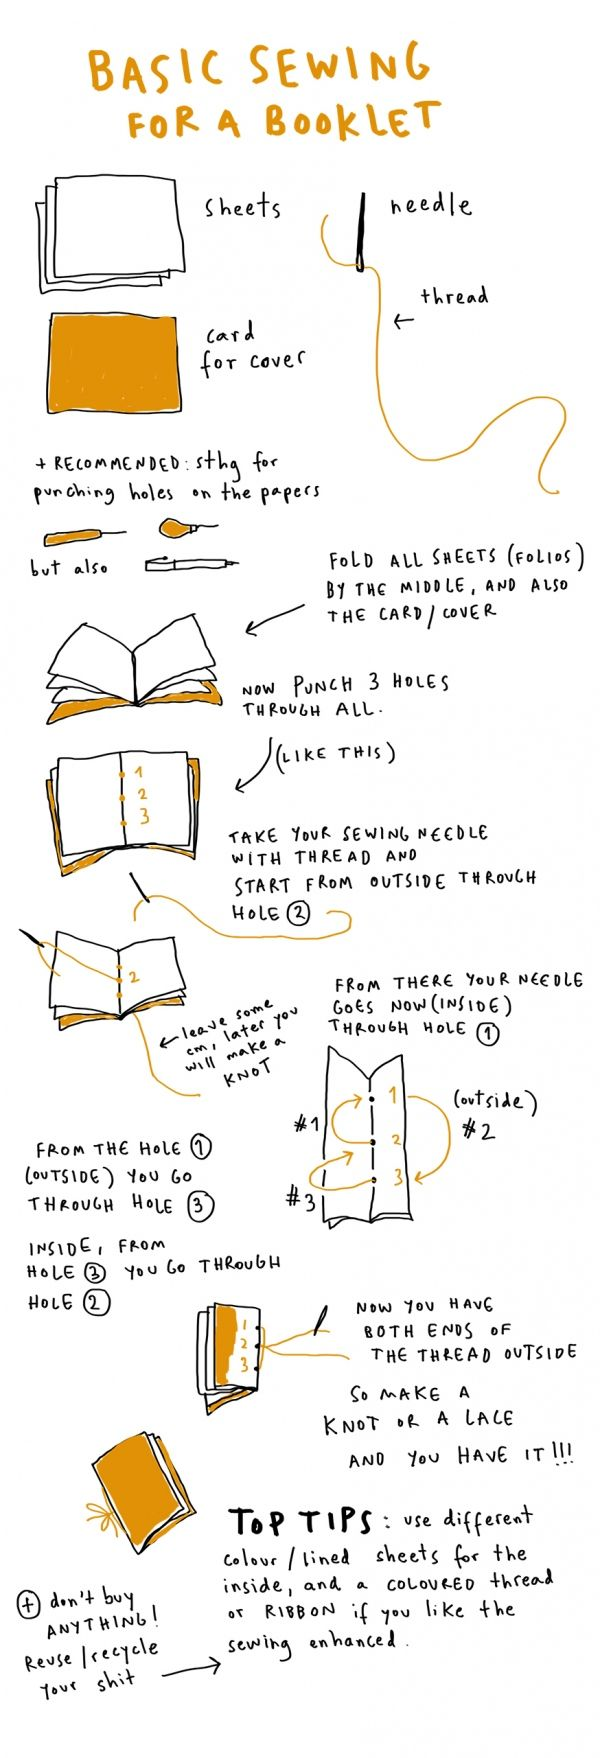 Basic sewing for a booklet: bookbinding instructions